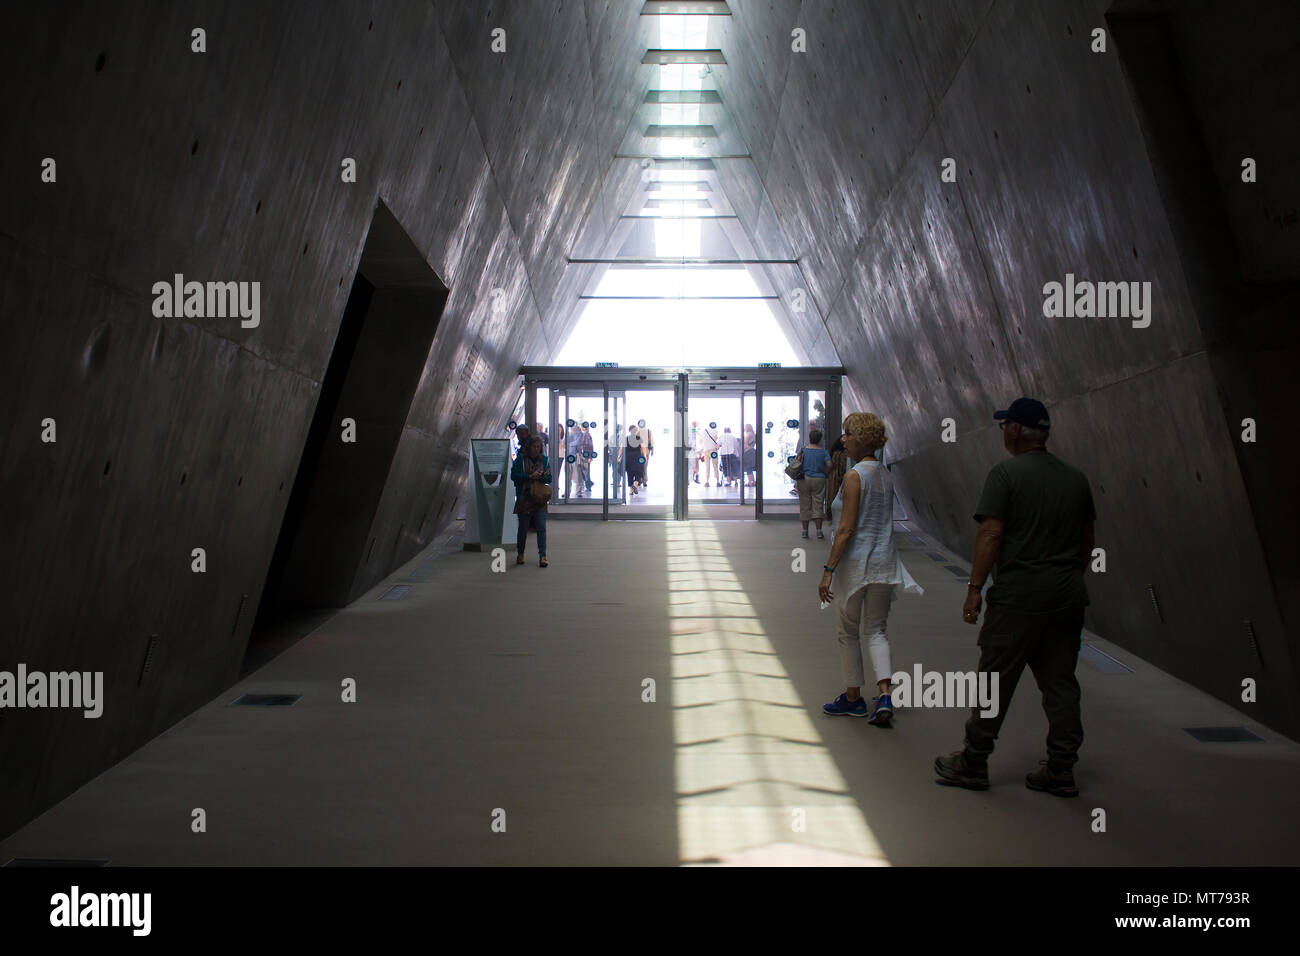 9 May 2018 Visitors leaving the darkness of the Yad Vashem museum in Jerusalem Israel and moving into the bright light of day. - Stock Image